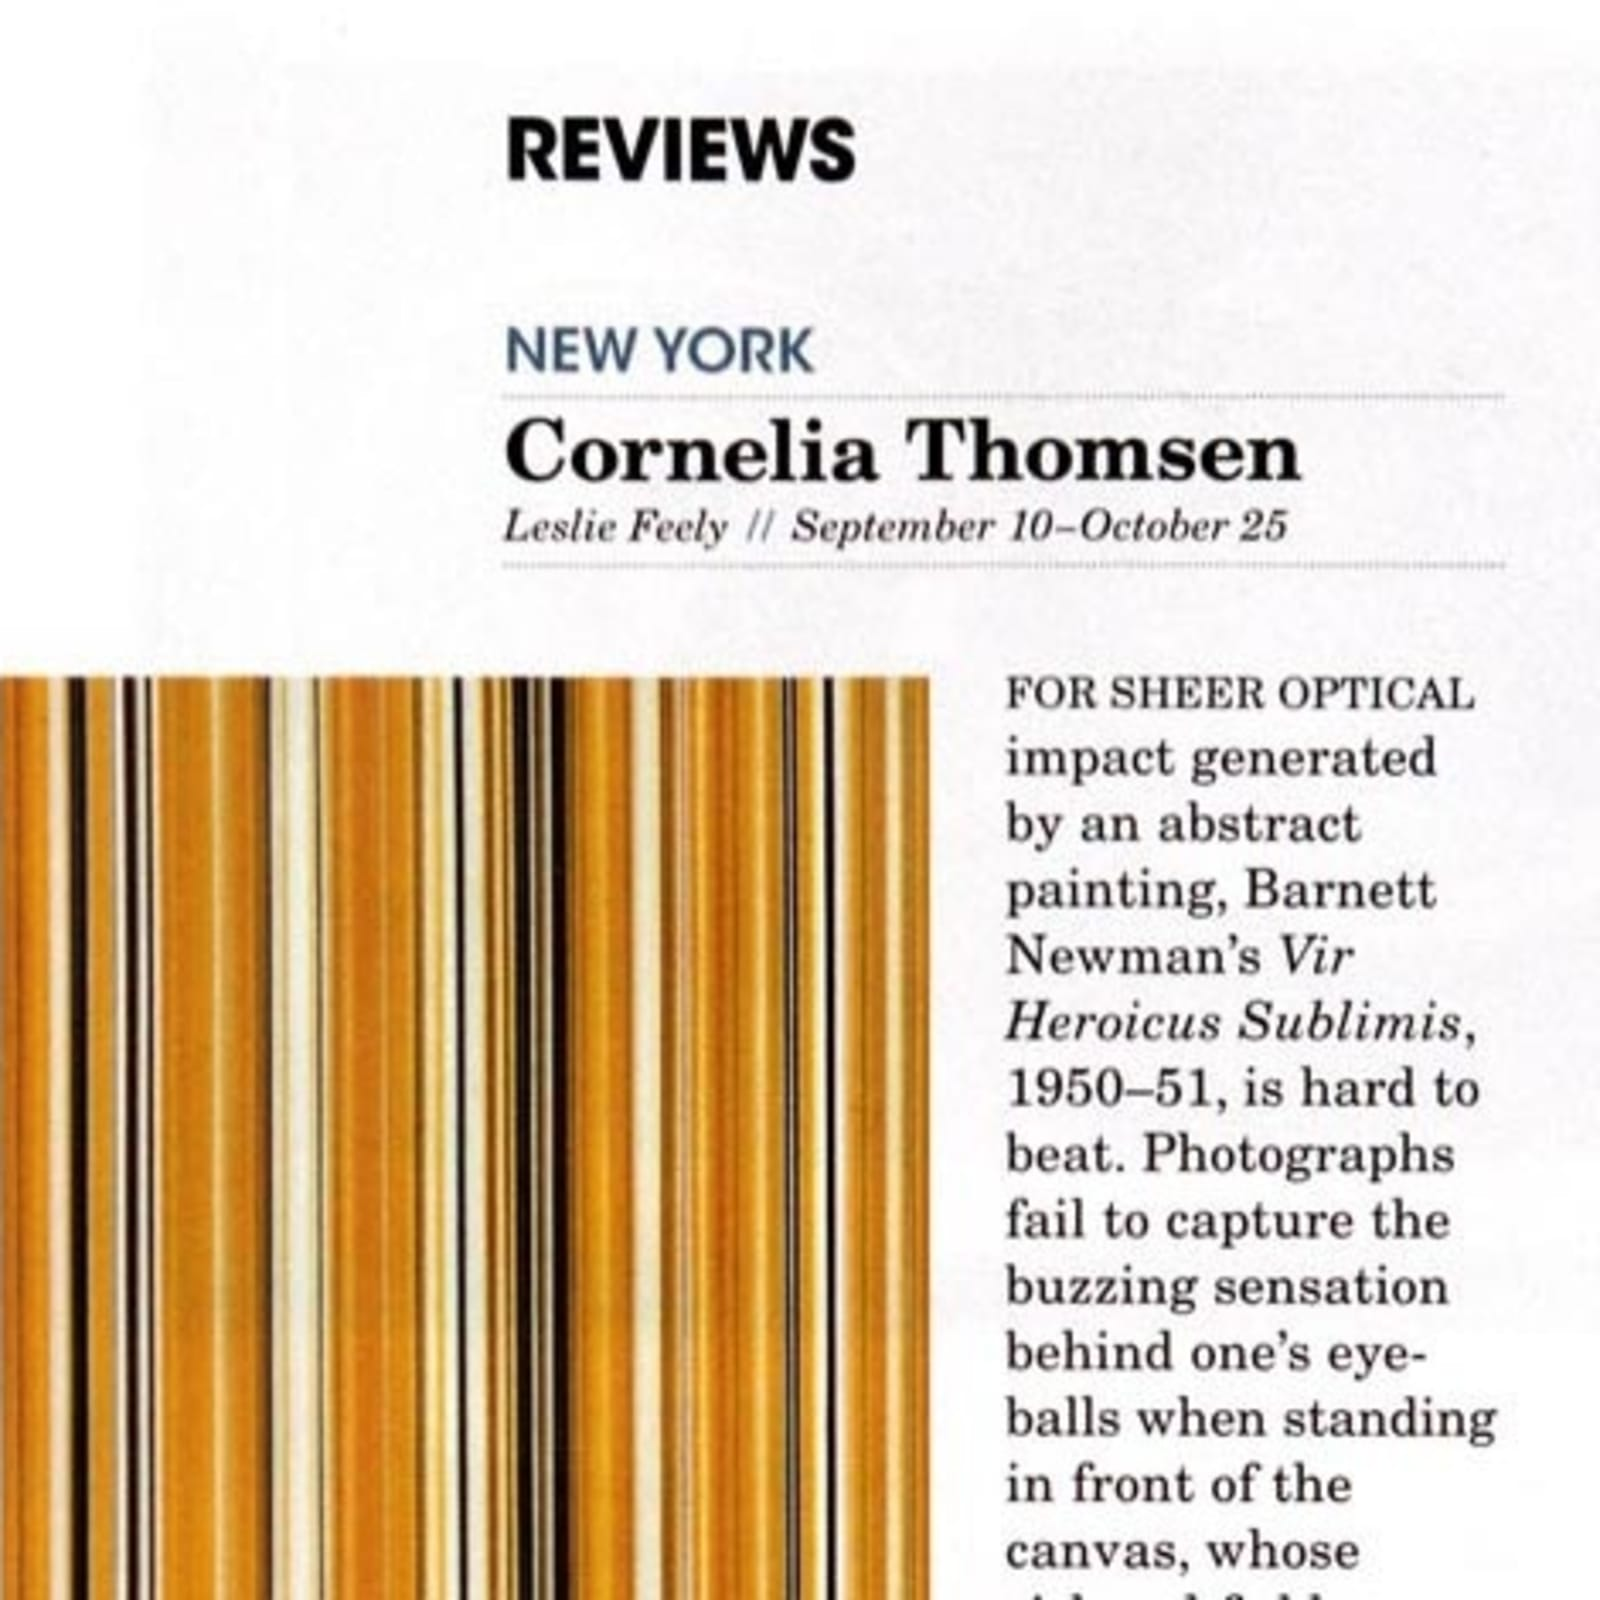 Modern Painters review of Cornelia Thomsens solo exhibition at Leslie Feely